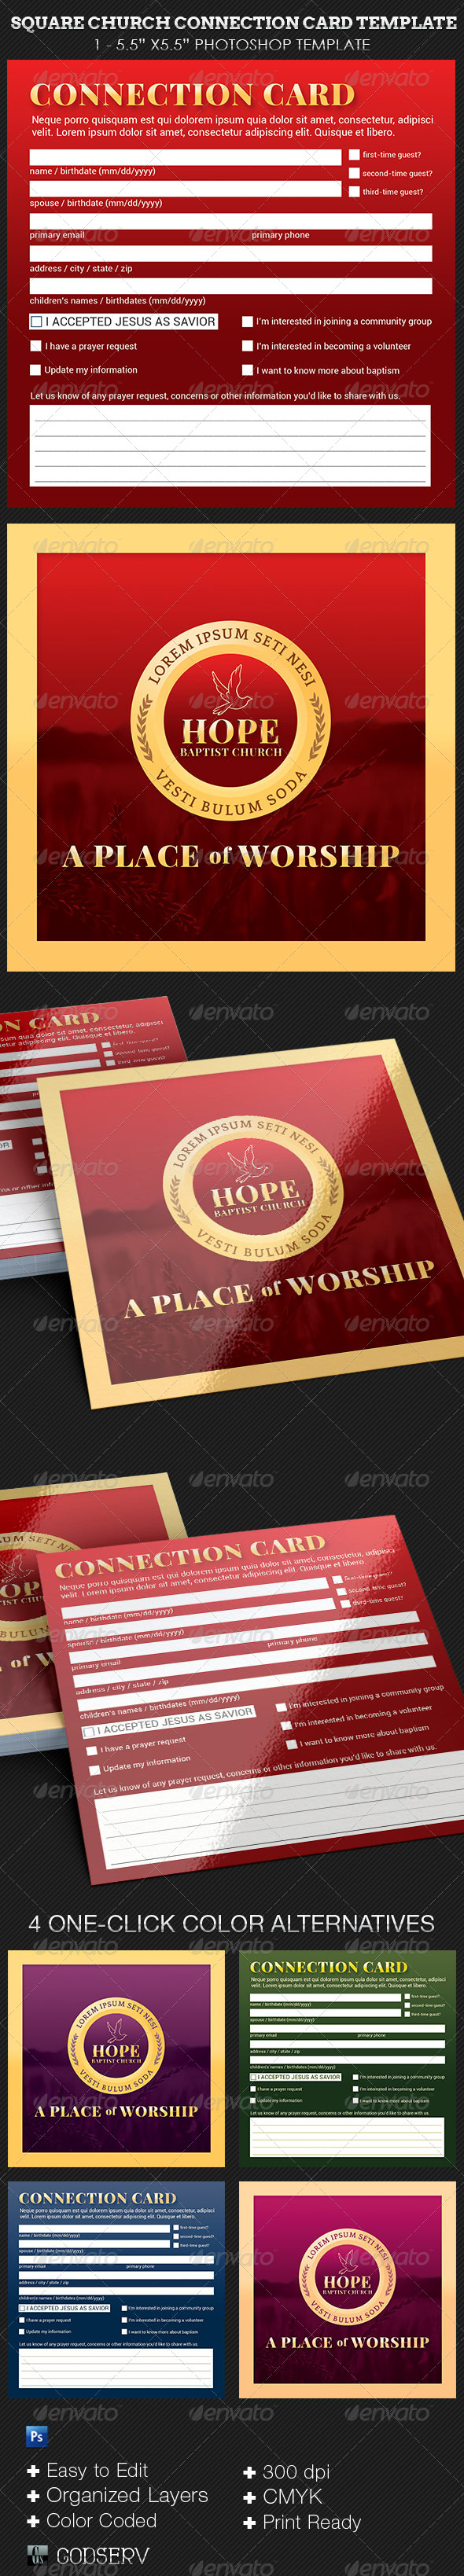 Church Square Connection Card Template - Church Flyers